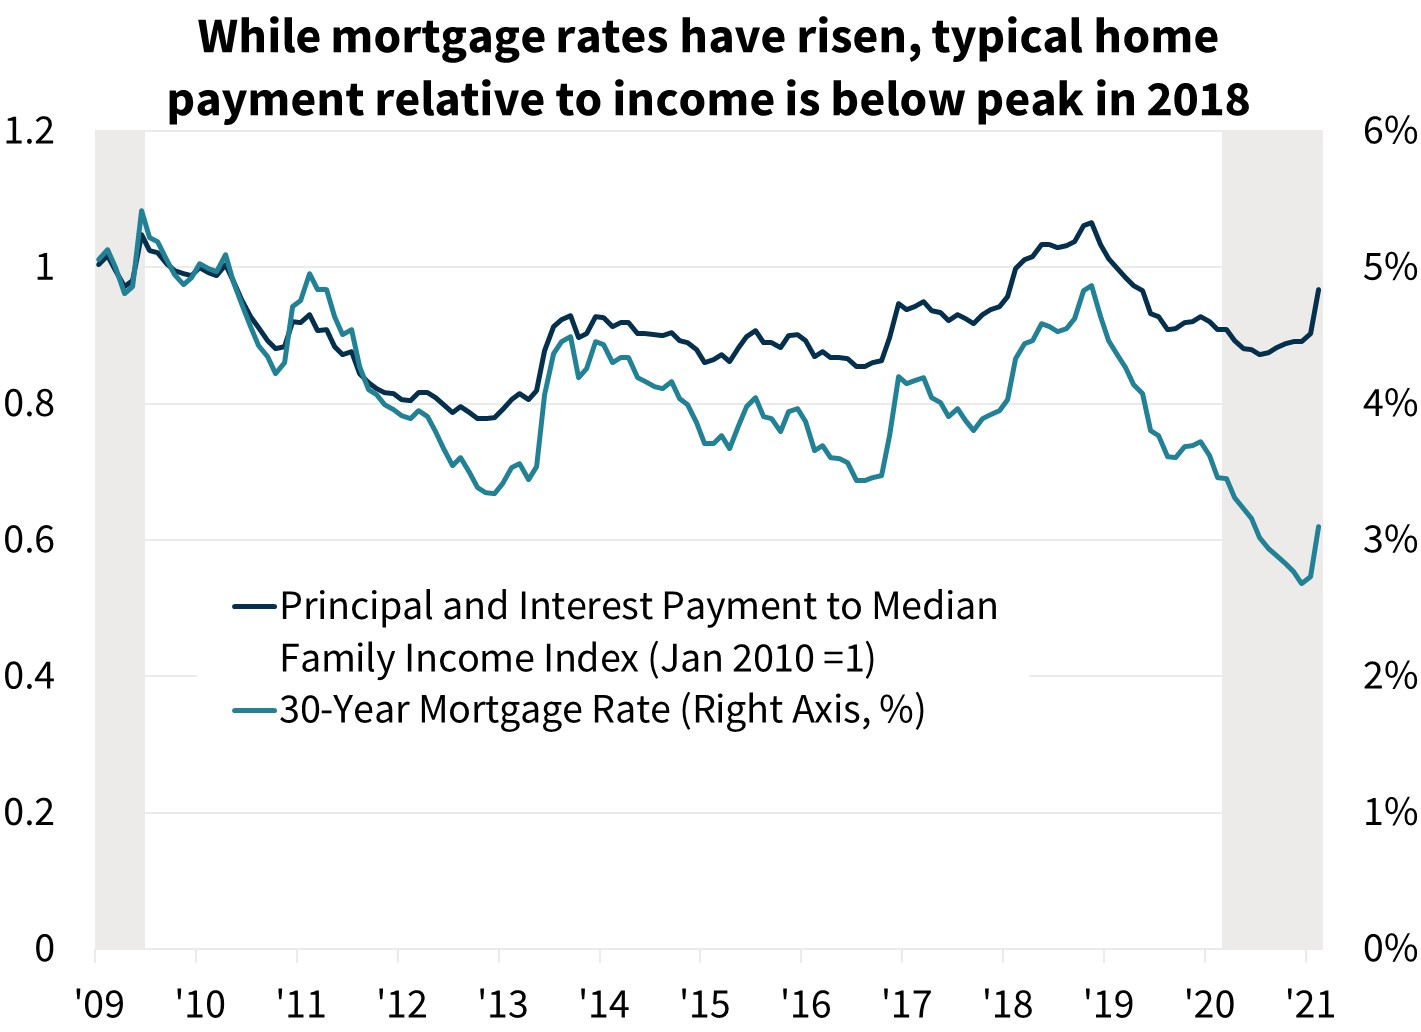 While mortgage rates have risen, typical home payment relative to income is below peak 2018